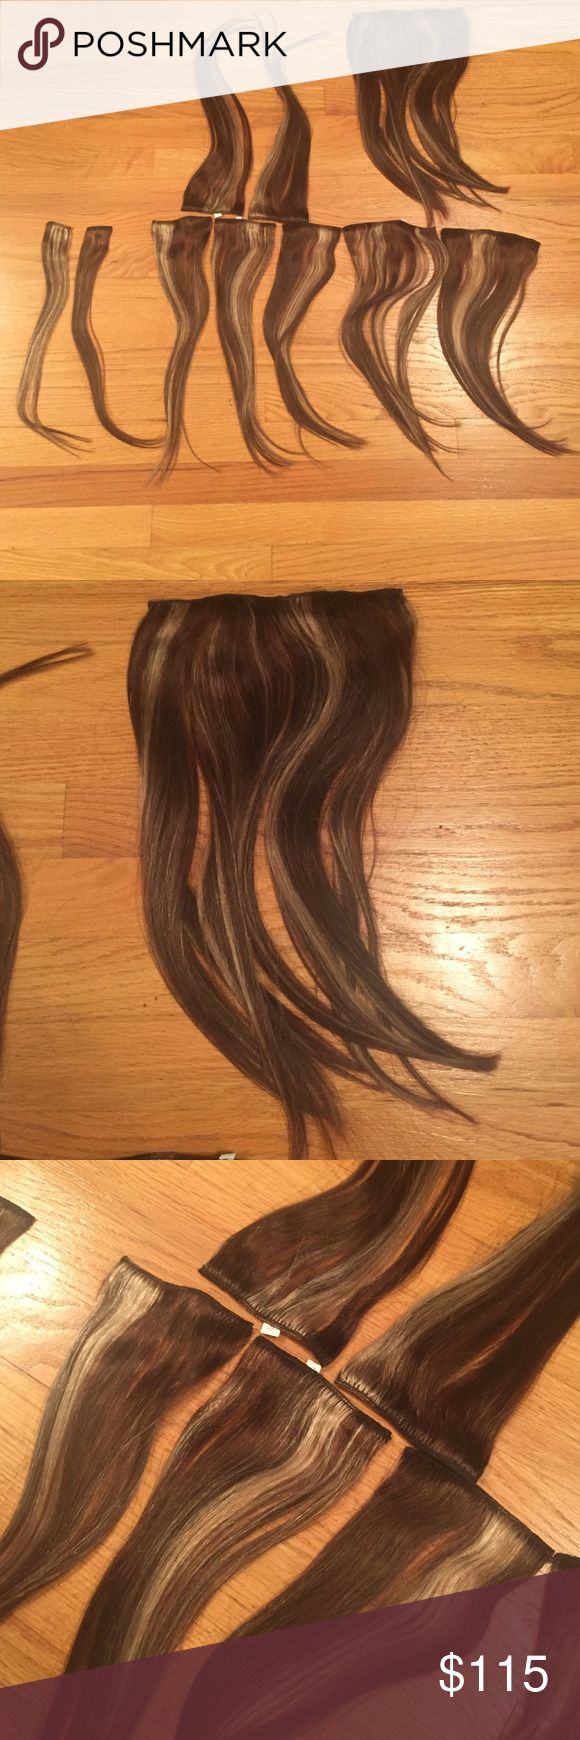 15 best highlighted hair images on pinterest dark brown colors headkandy human hair extensions brunette 16 18 inch length human hair extensions never worn pmusecretfo Gallery